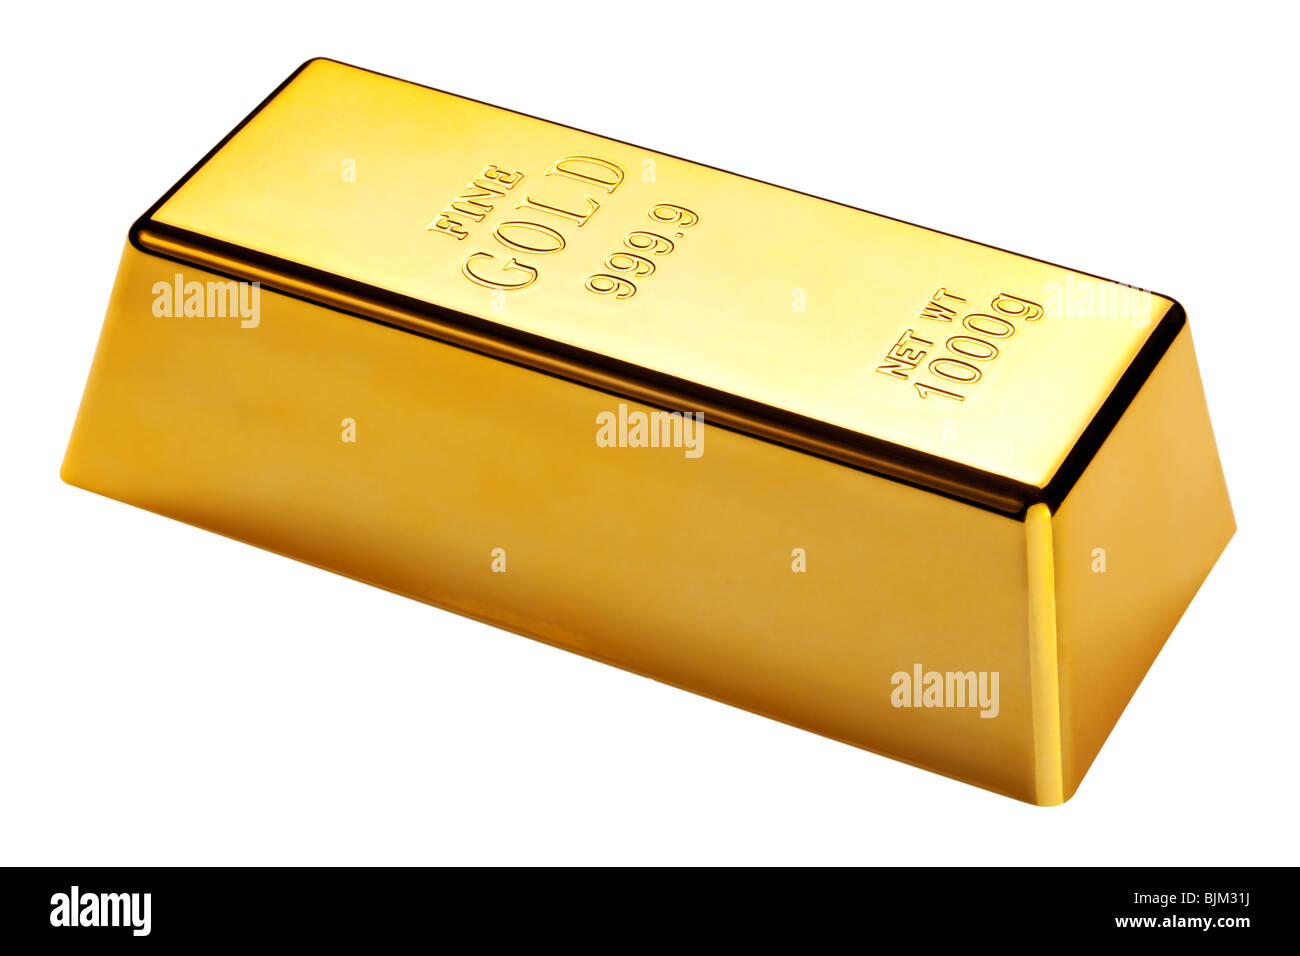 Photo of a 1kg gold bar isolated on a white background with clipping path - Stock Image